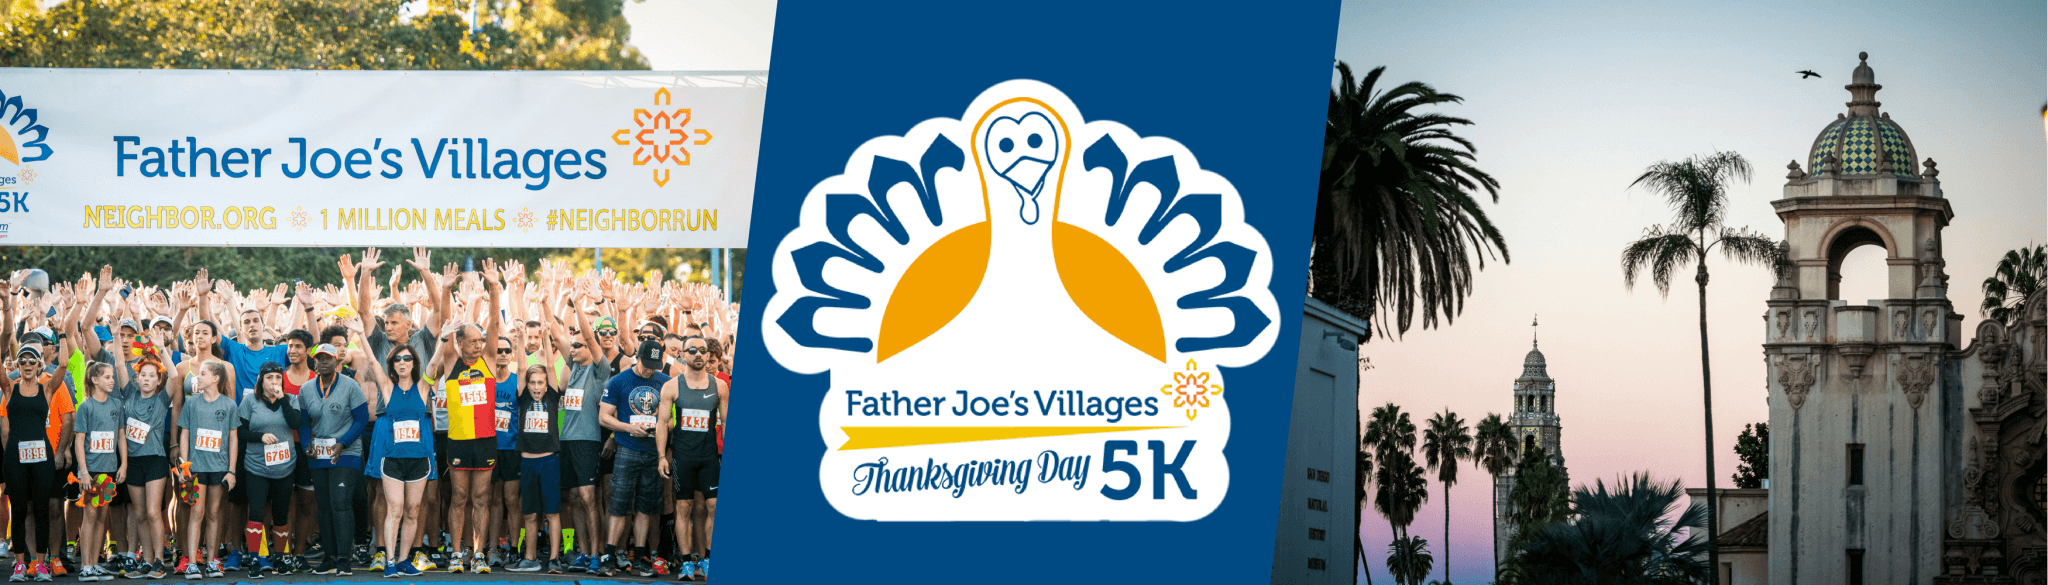 Father Joe's Village Thanksgiving Day 5K header